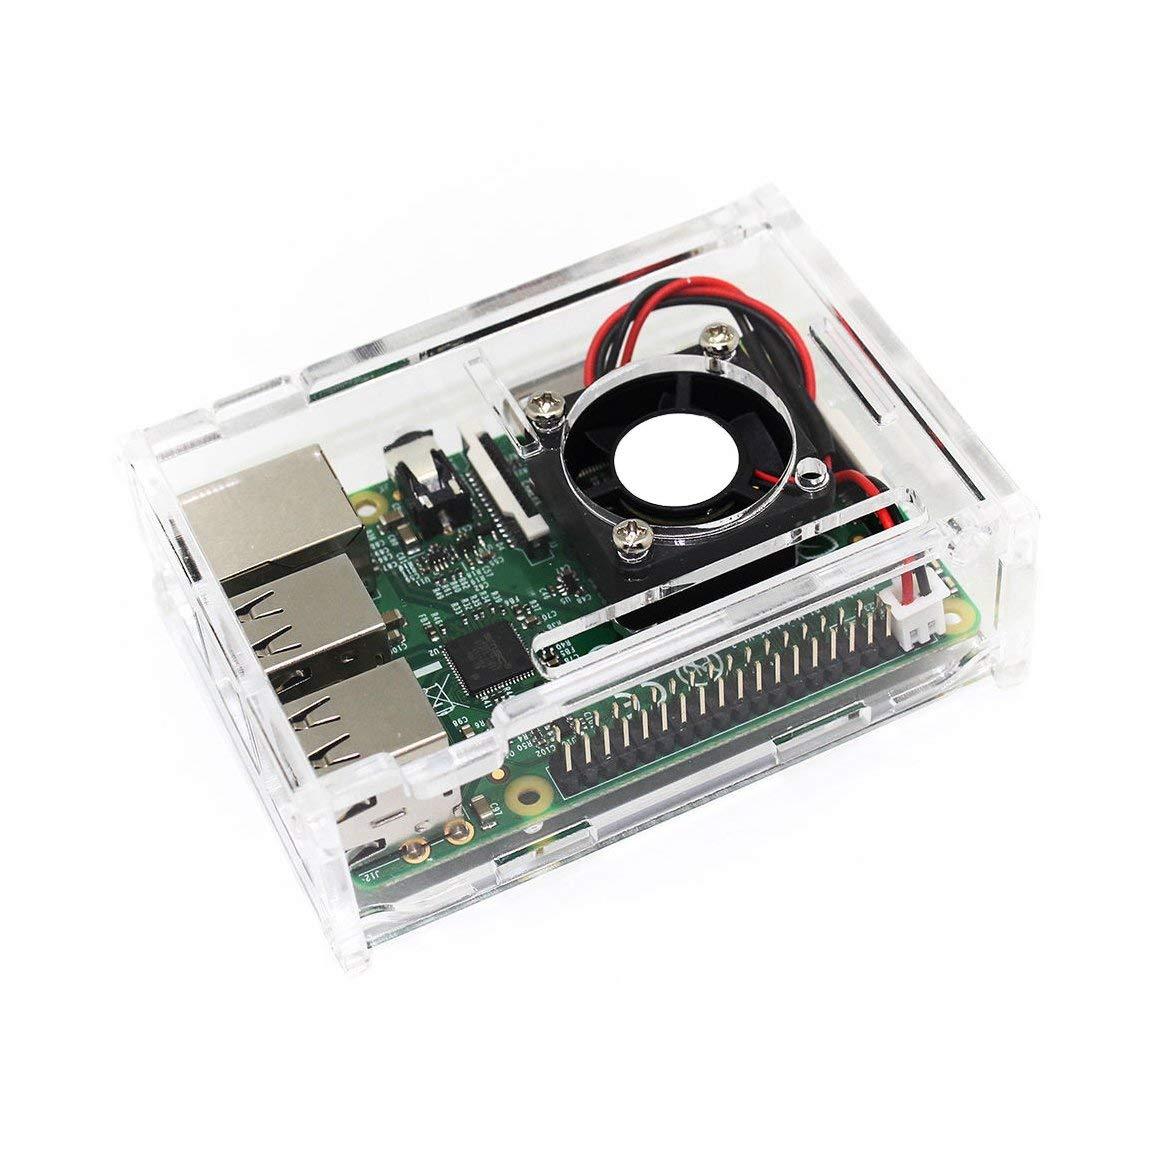 SK Studio Acrylic Motherboard Mount Case for Raspberry Pi 3 Model B+ and Rpi 3B/2B with Cooling Fan Clear